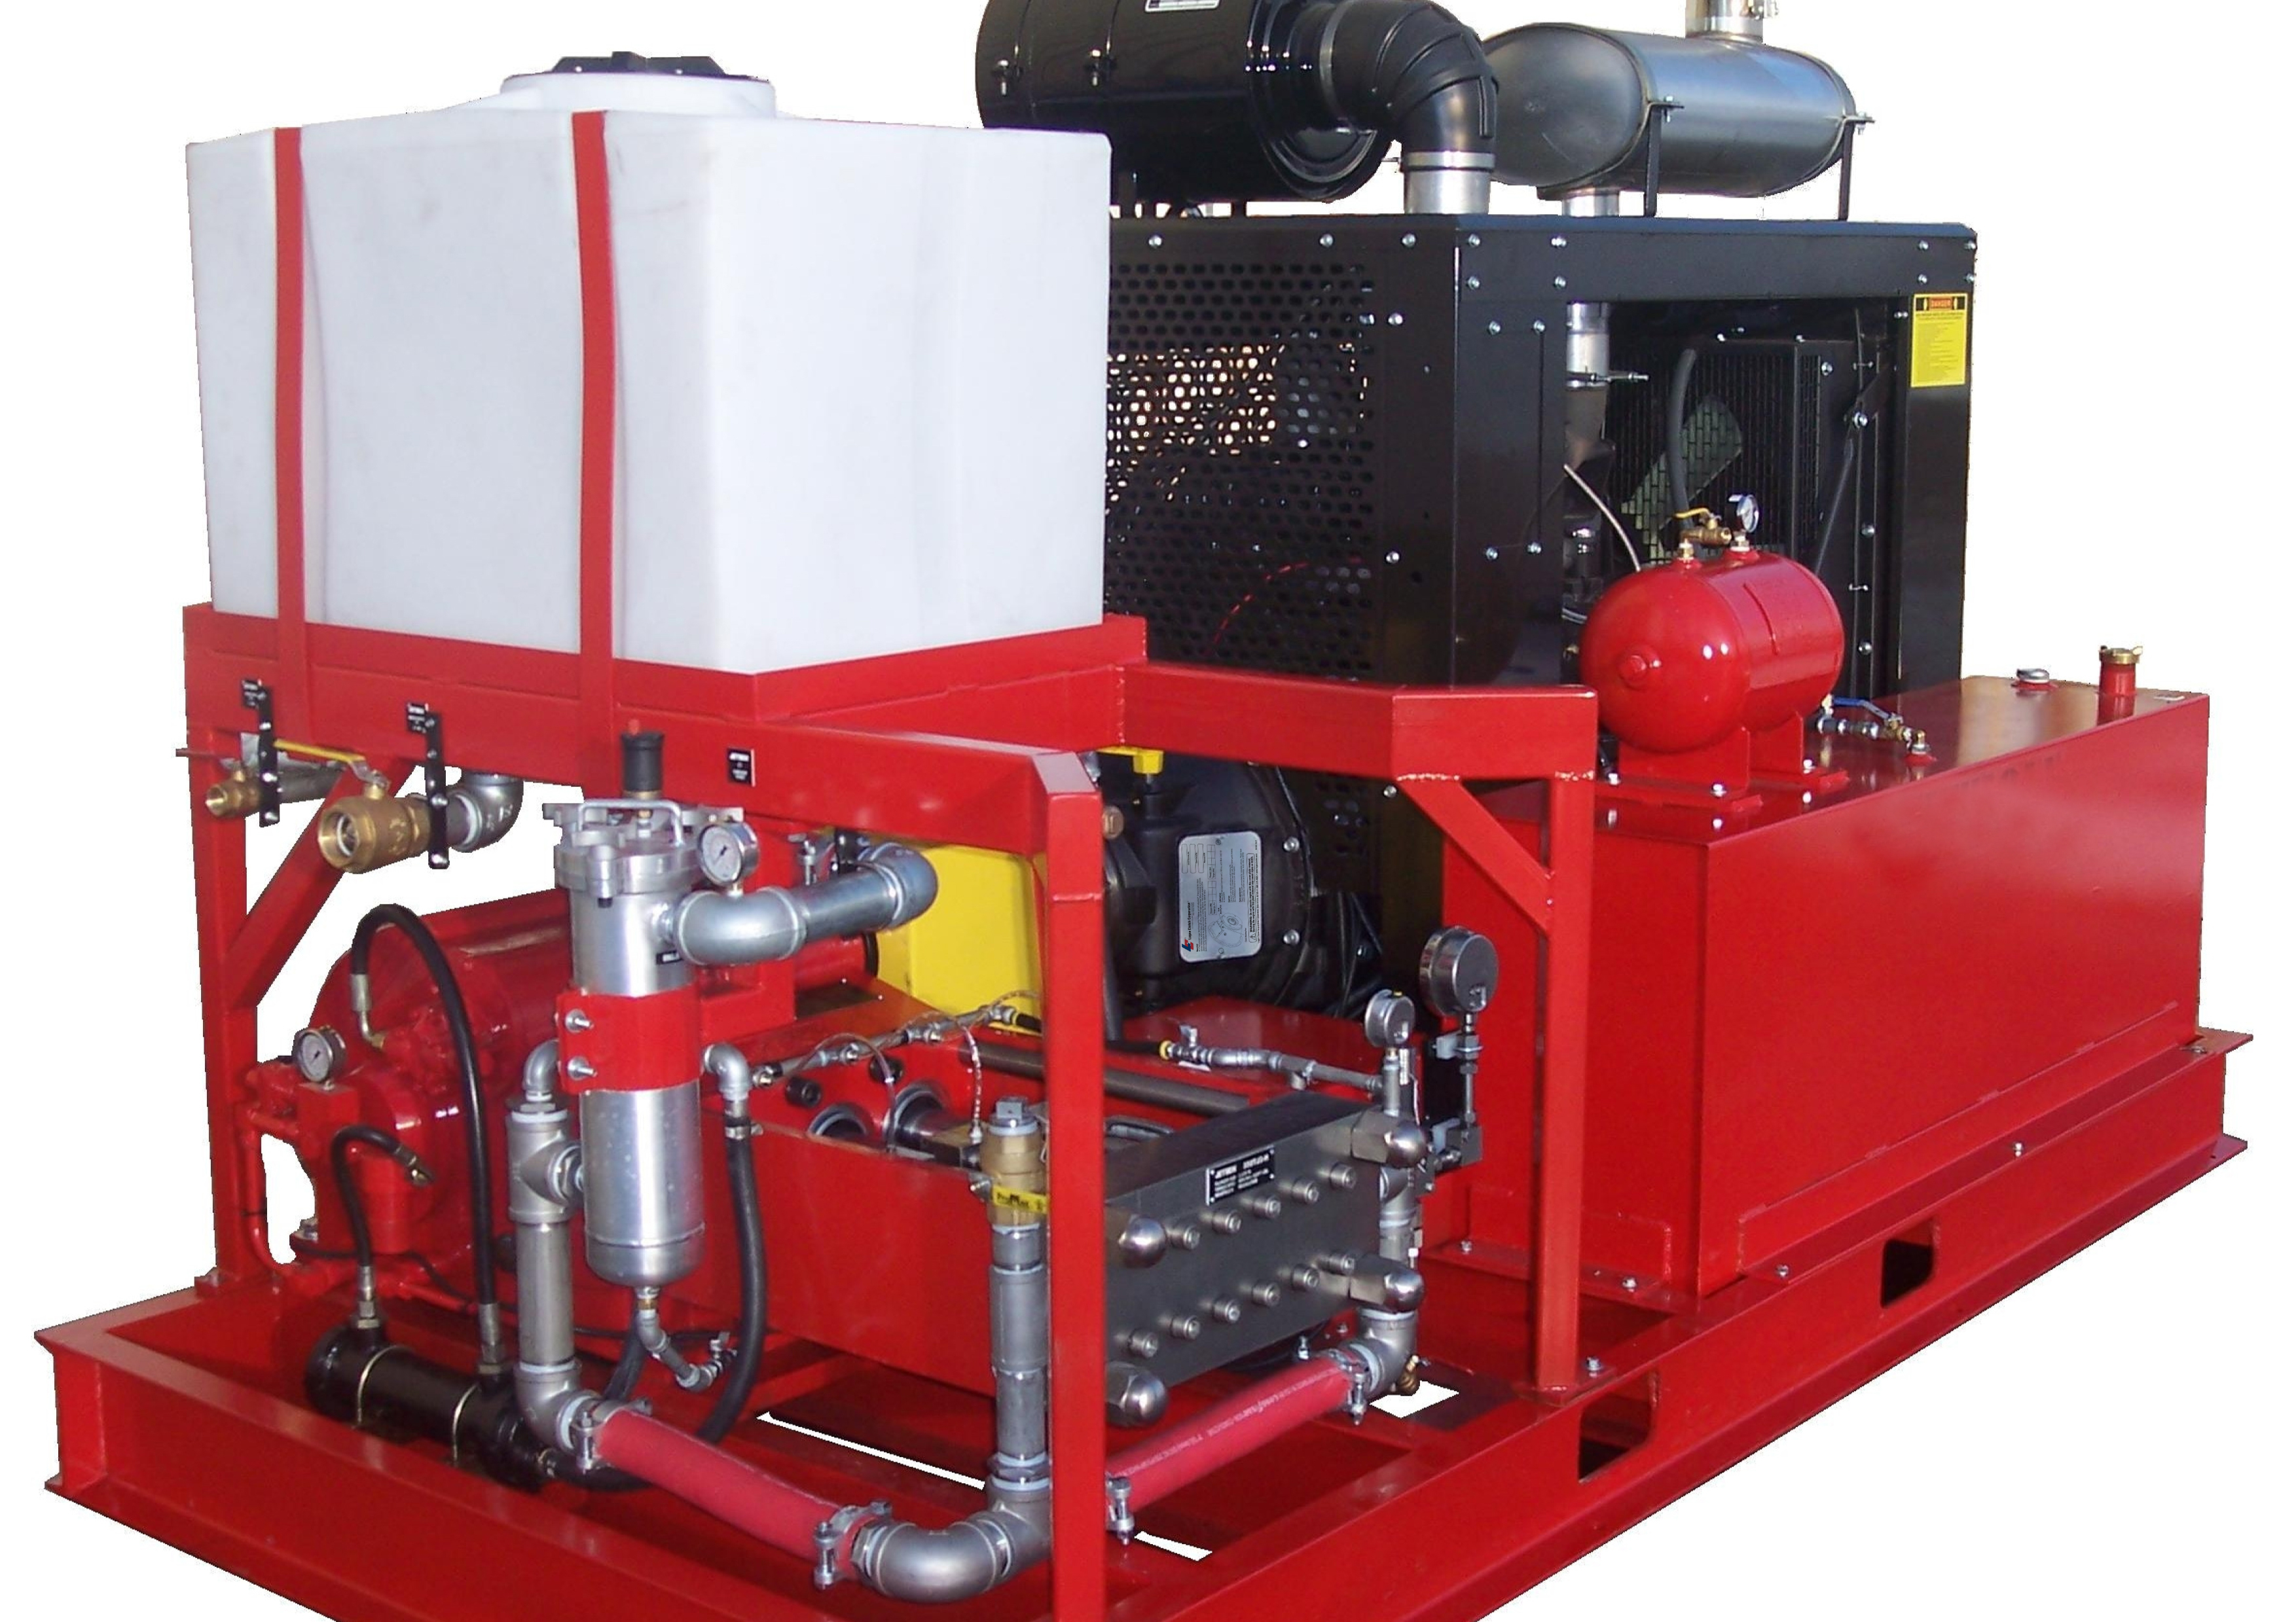 Skid Mounted Waterjet System Outfitted with 200 HP engine and LC-211 PTO